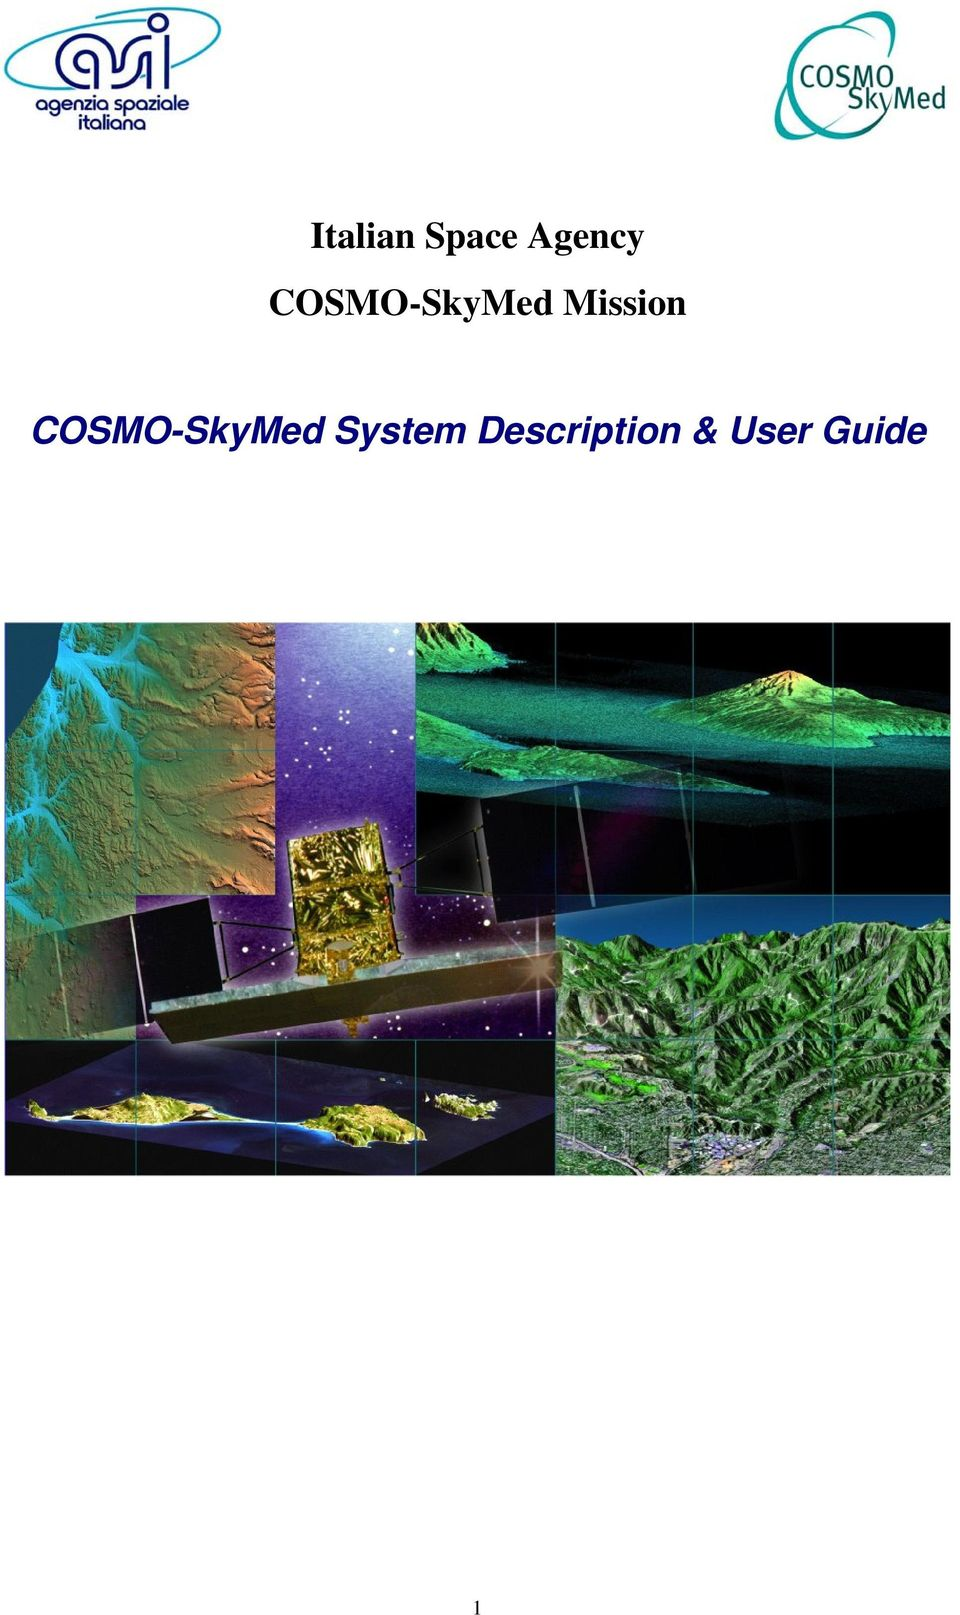 COSMO-SkyMed System